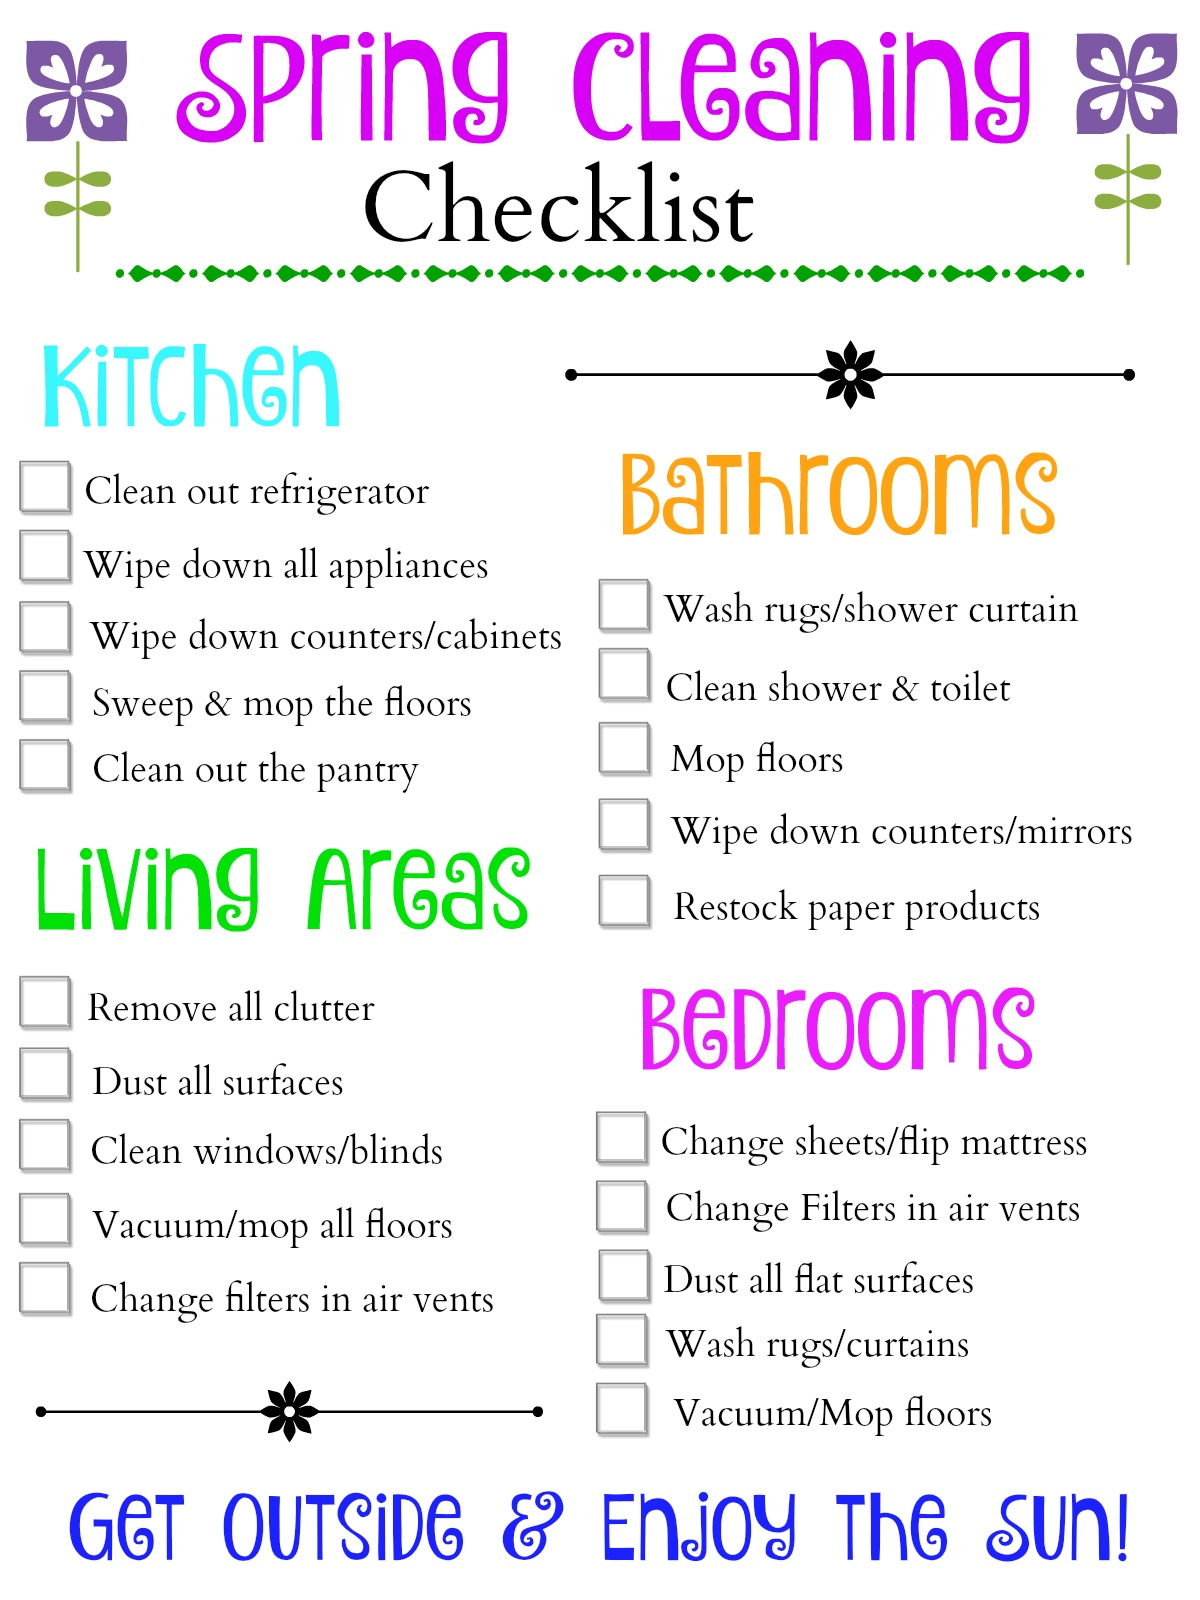 Spring Cleaning Made Simple The Adventures of JMan and Millerbug – Sample Spring Cleaning Checklist